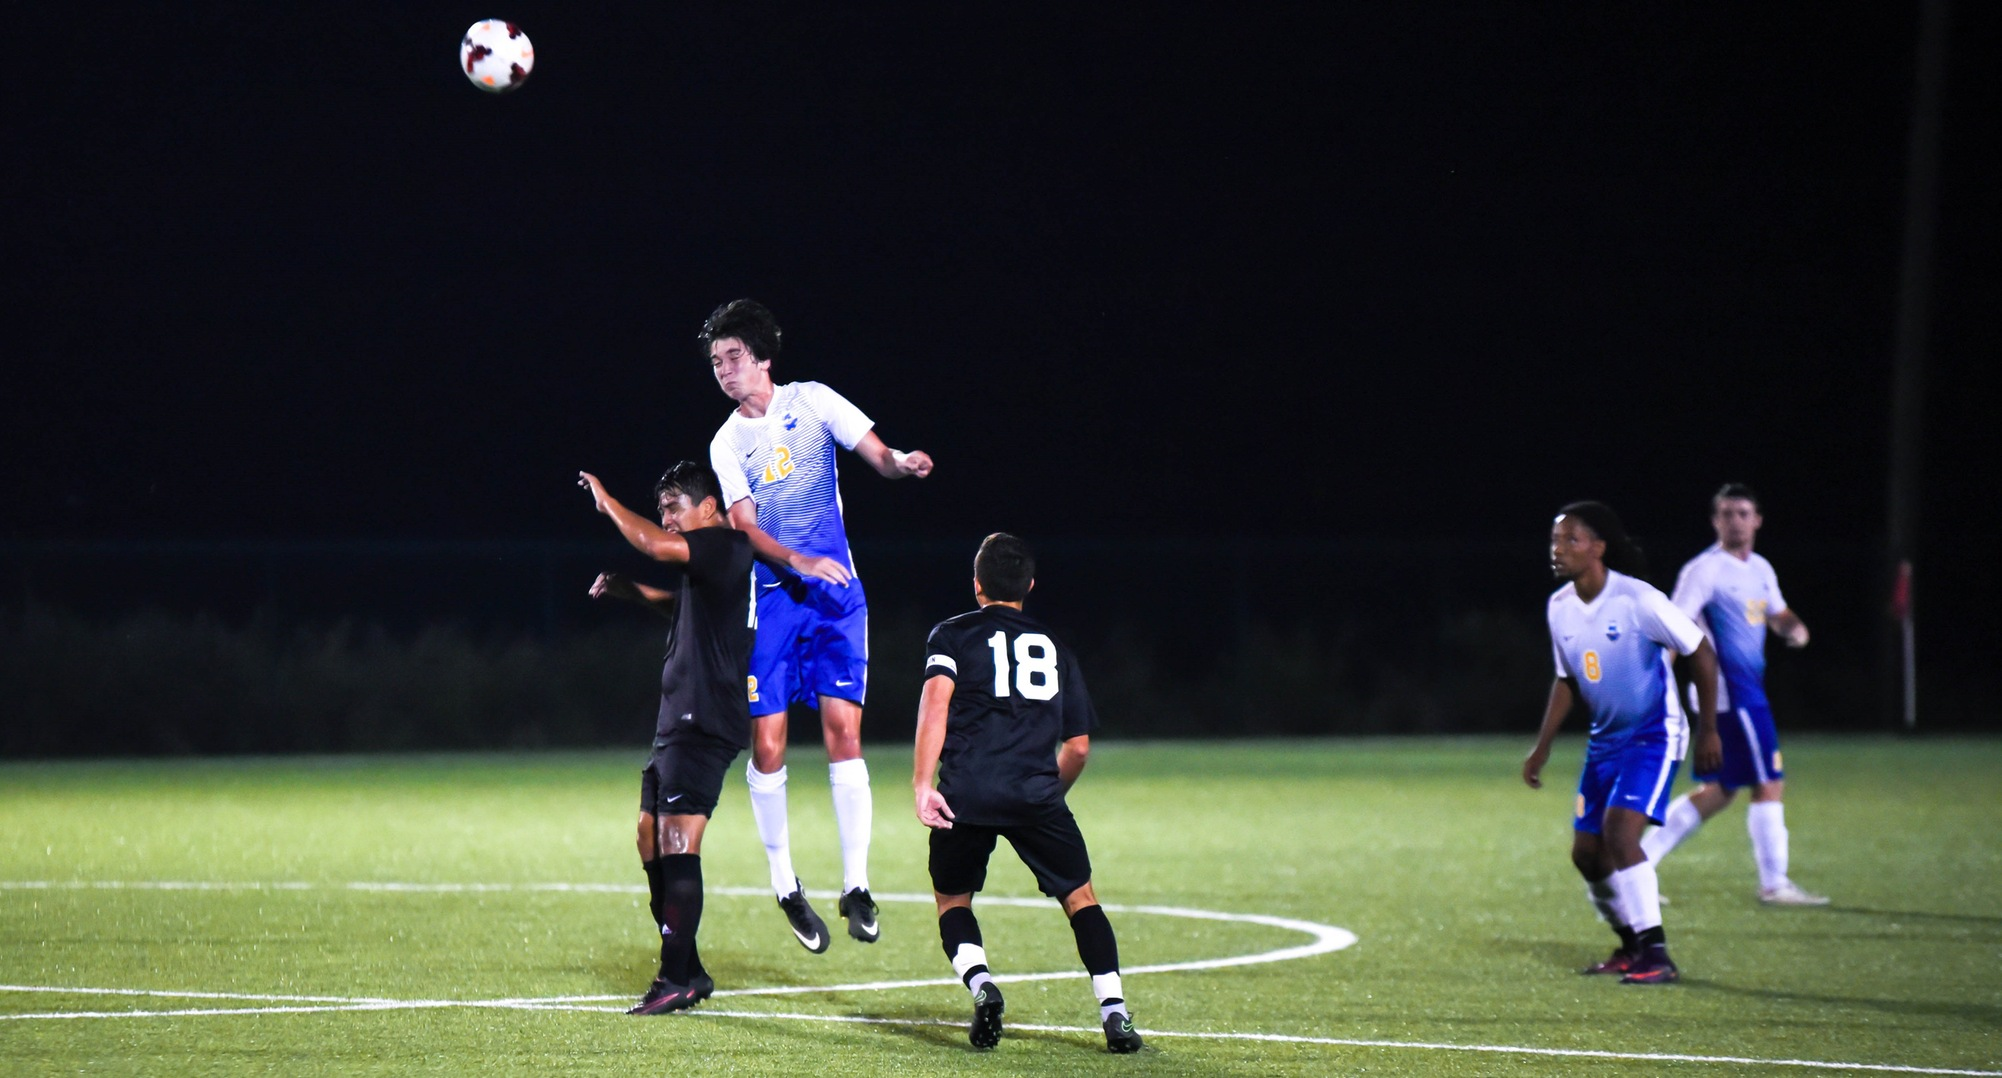 Men's Soccer Rolls on With 5-0 Win over Oxford